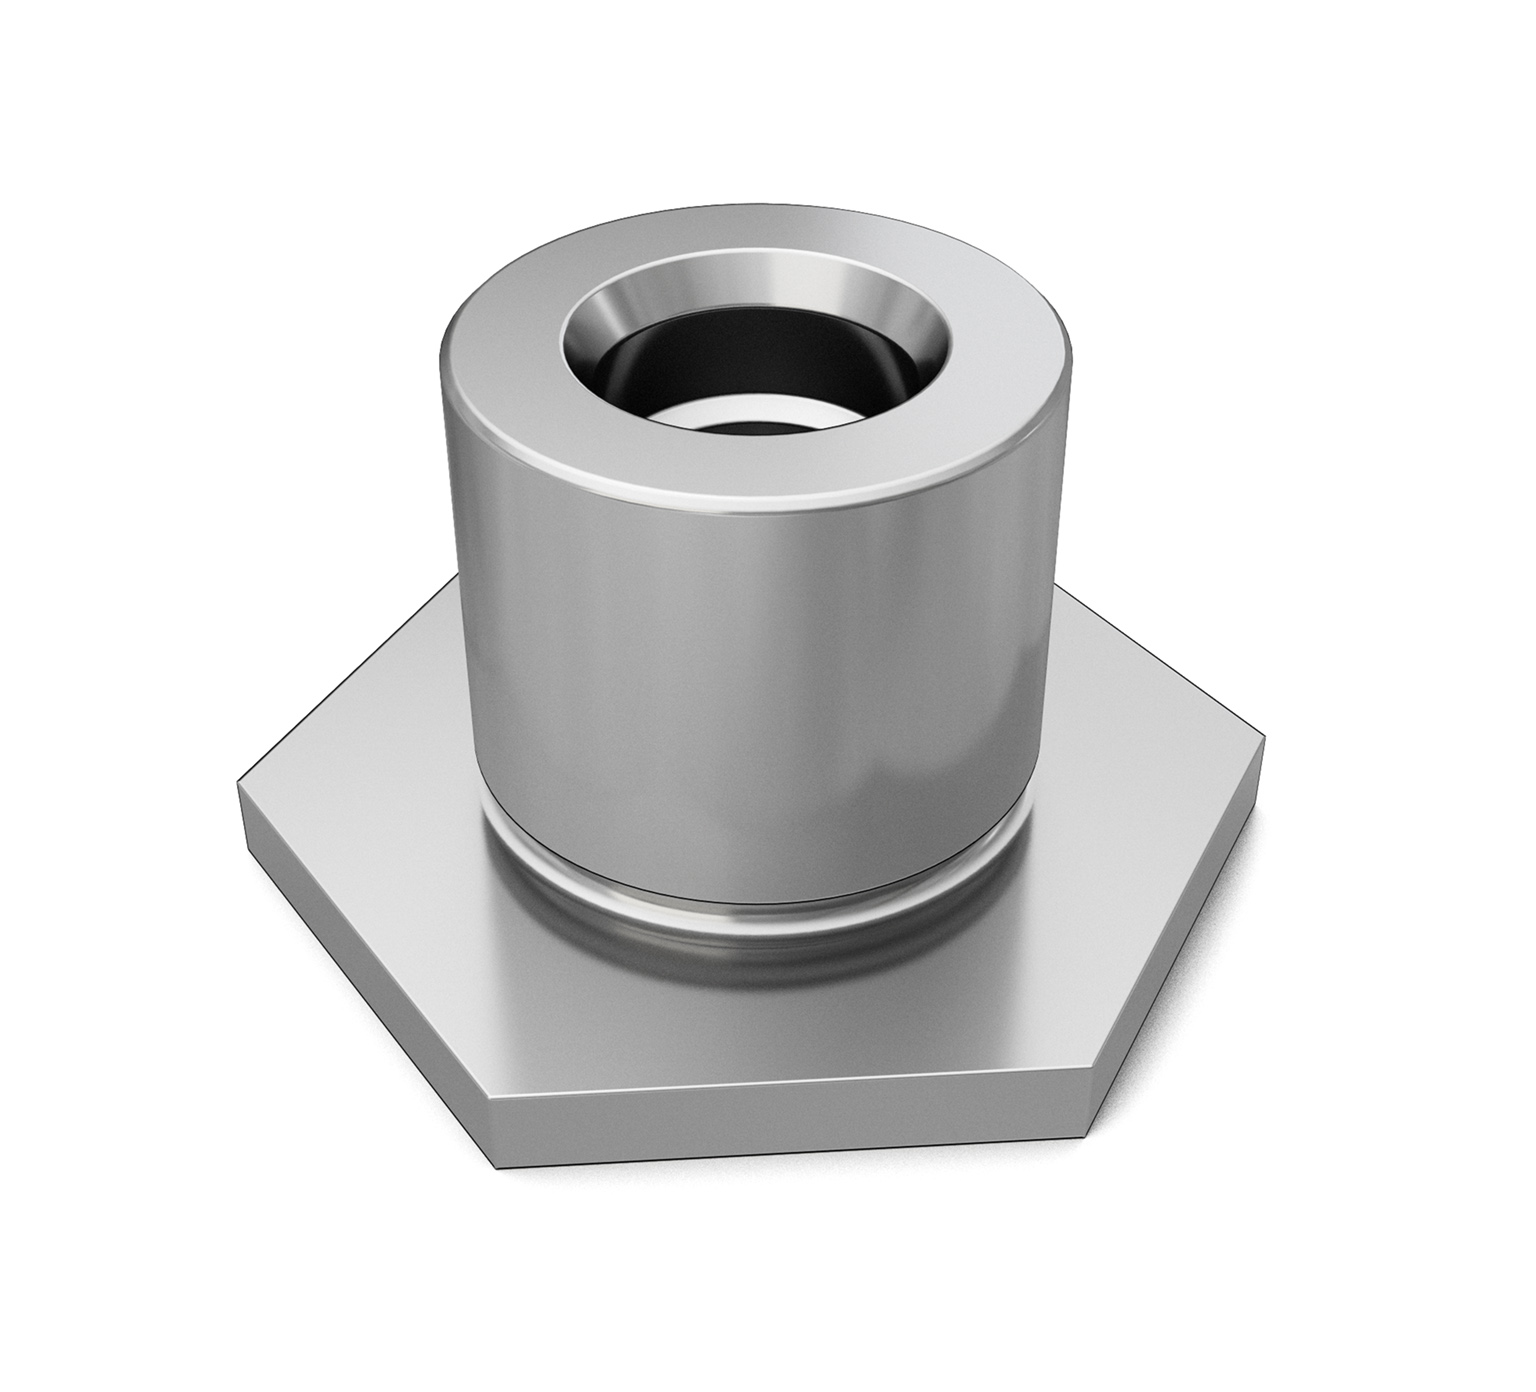 1200525 Steel Hex Flange Bushing - 1 x 0.629 in alt 1